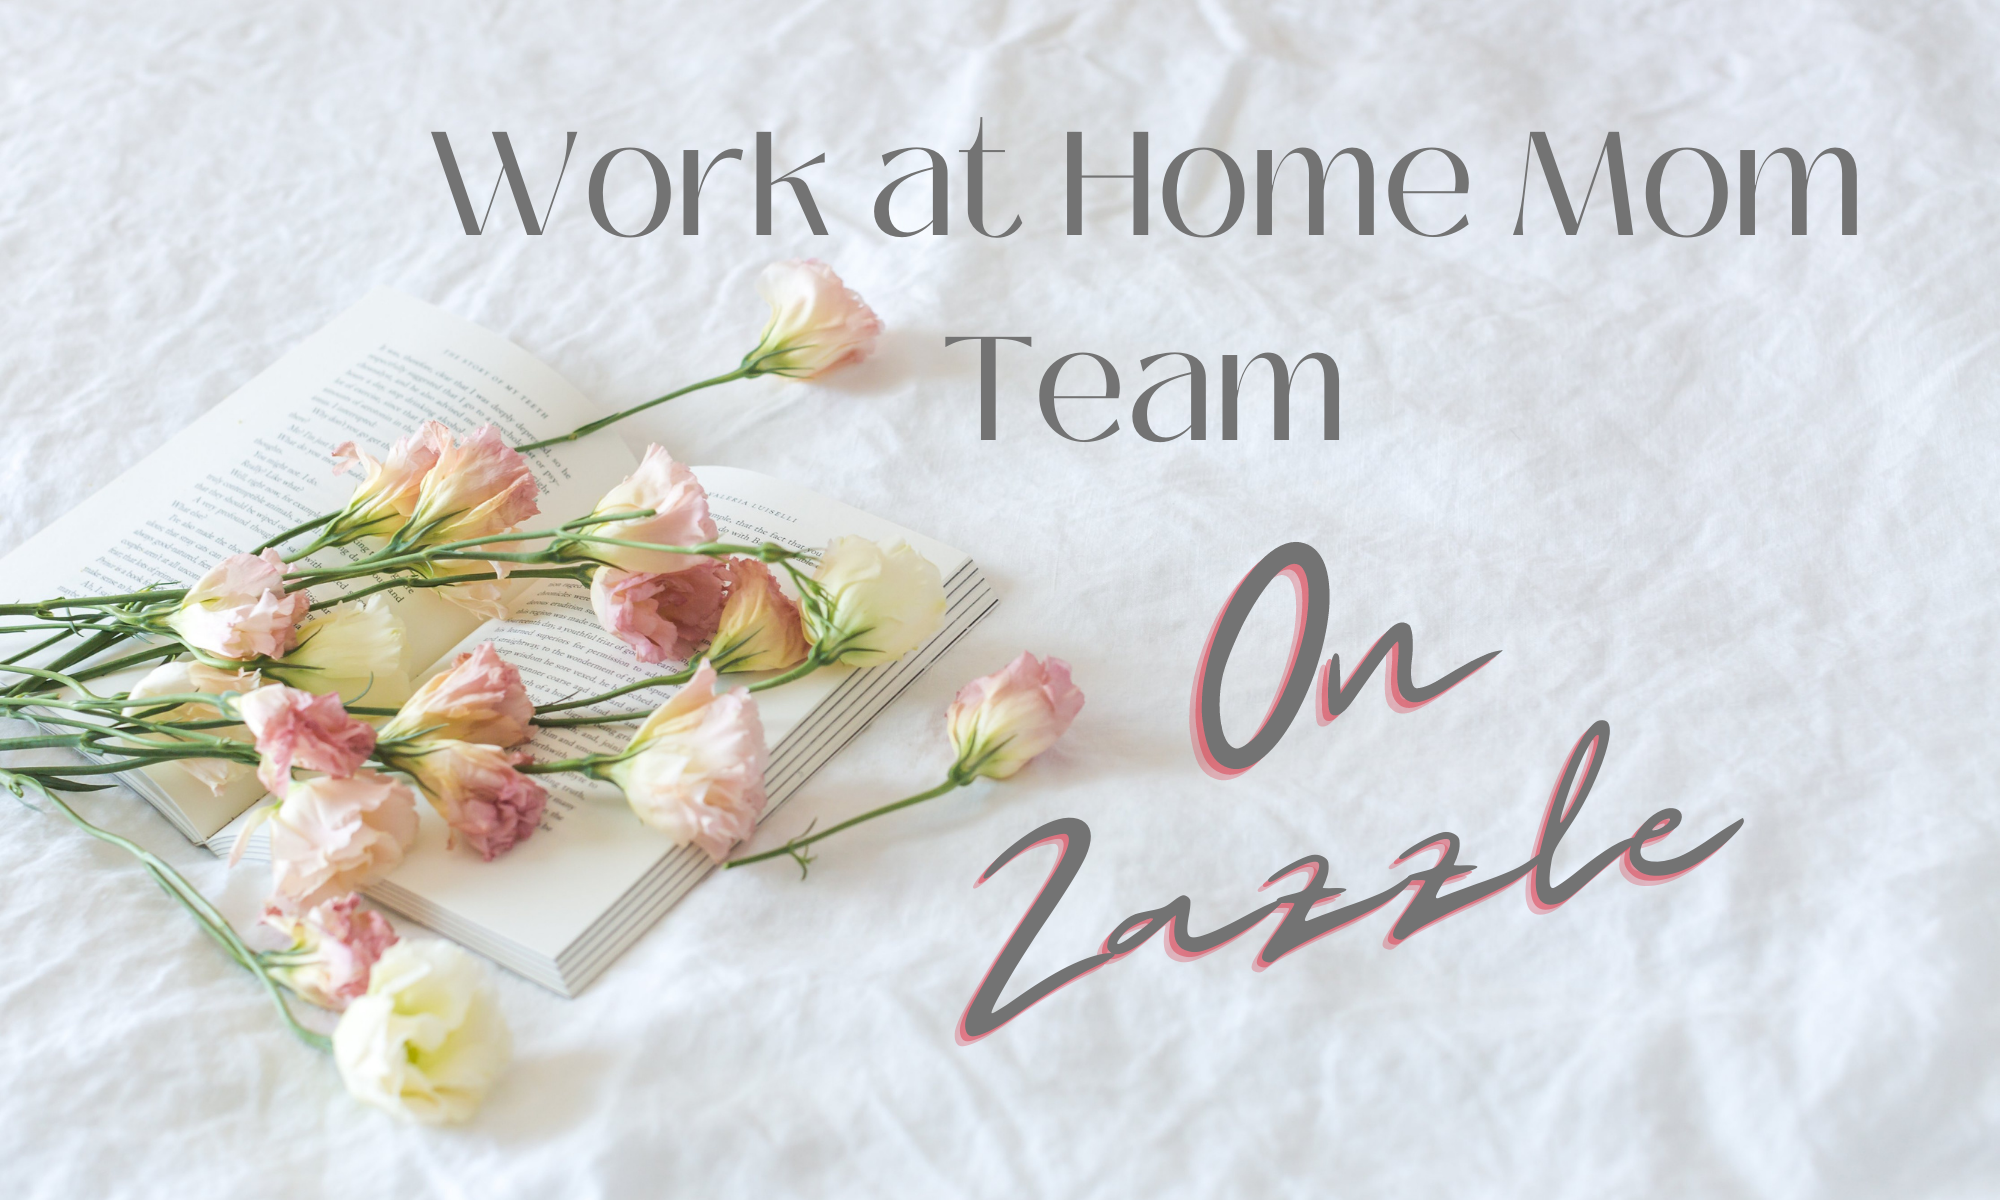 Work at Home Mom Team on Zazzle